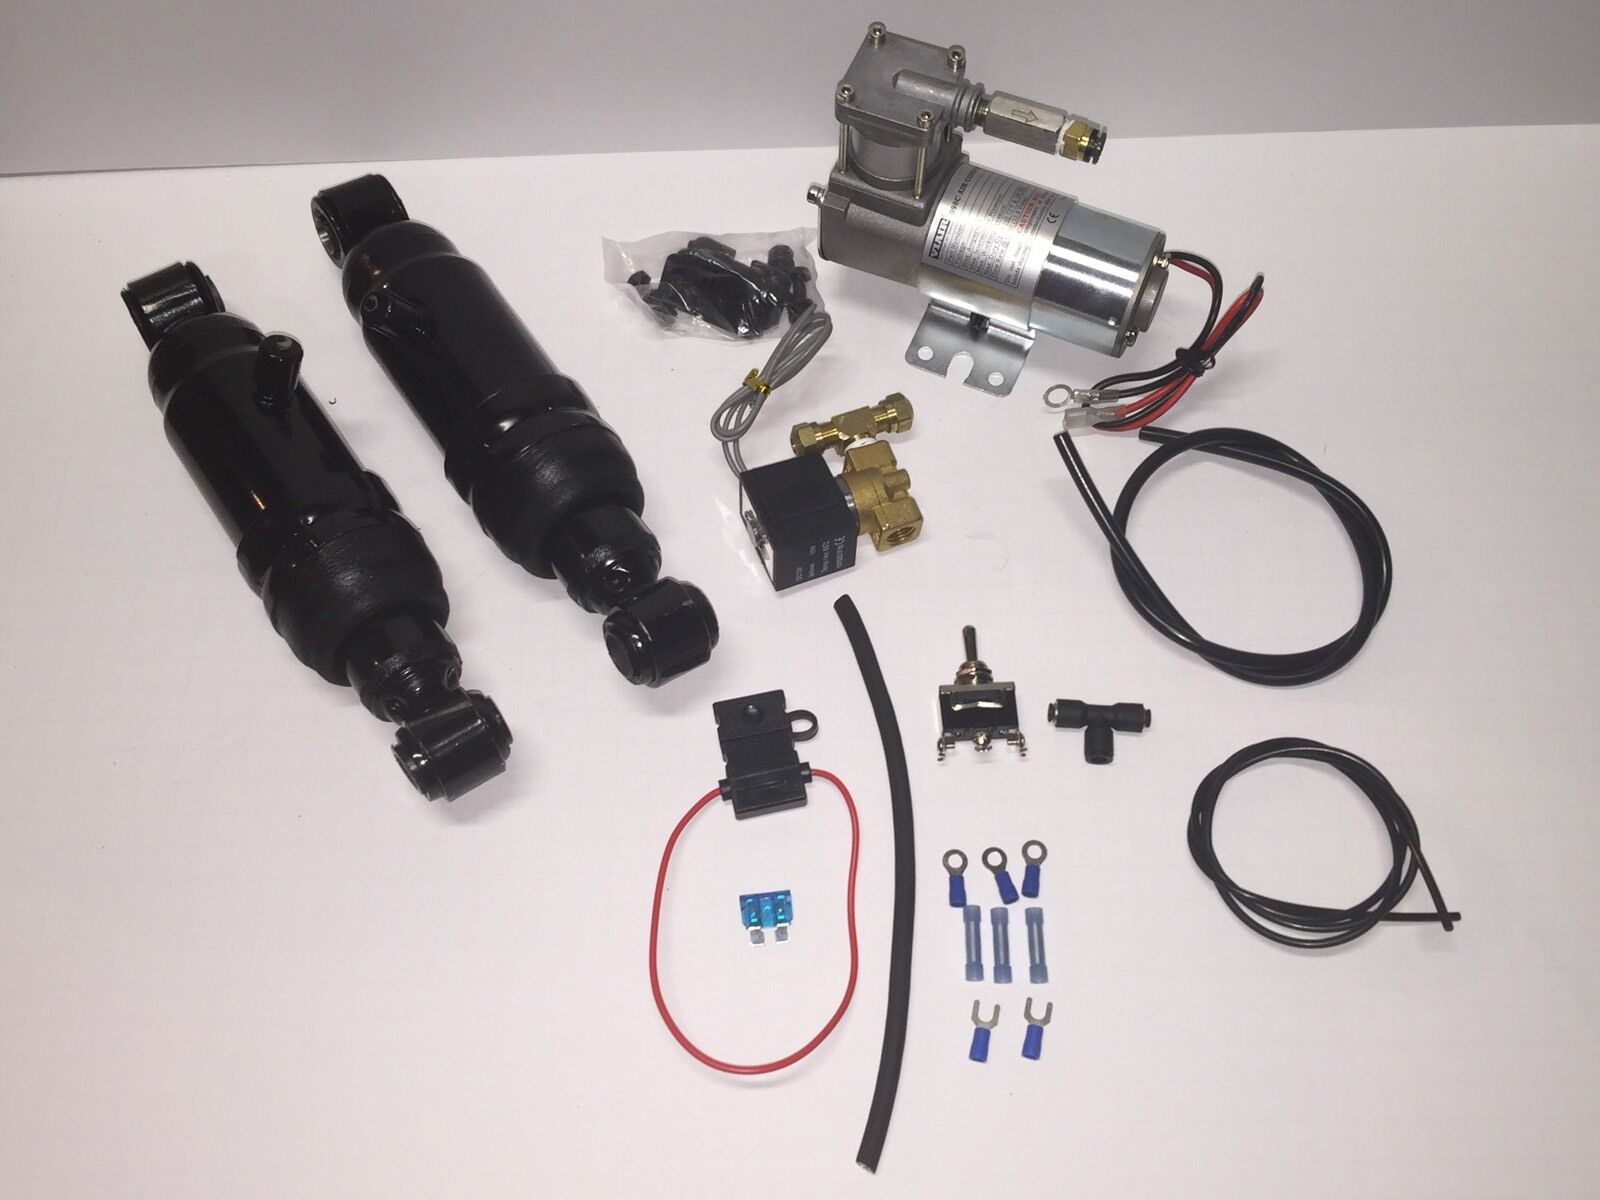 Handlebar Switch Included Harley Davidson Air Ride Kit 94 To Current Diy 1 Of 12free Shipping